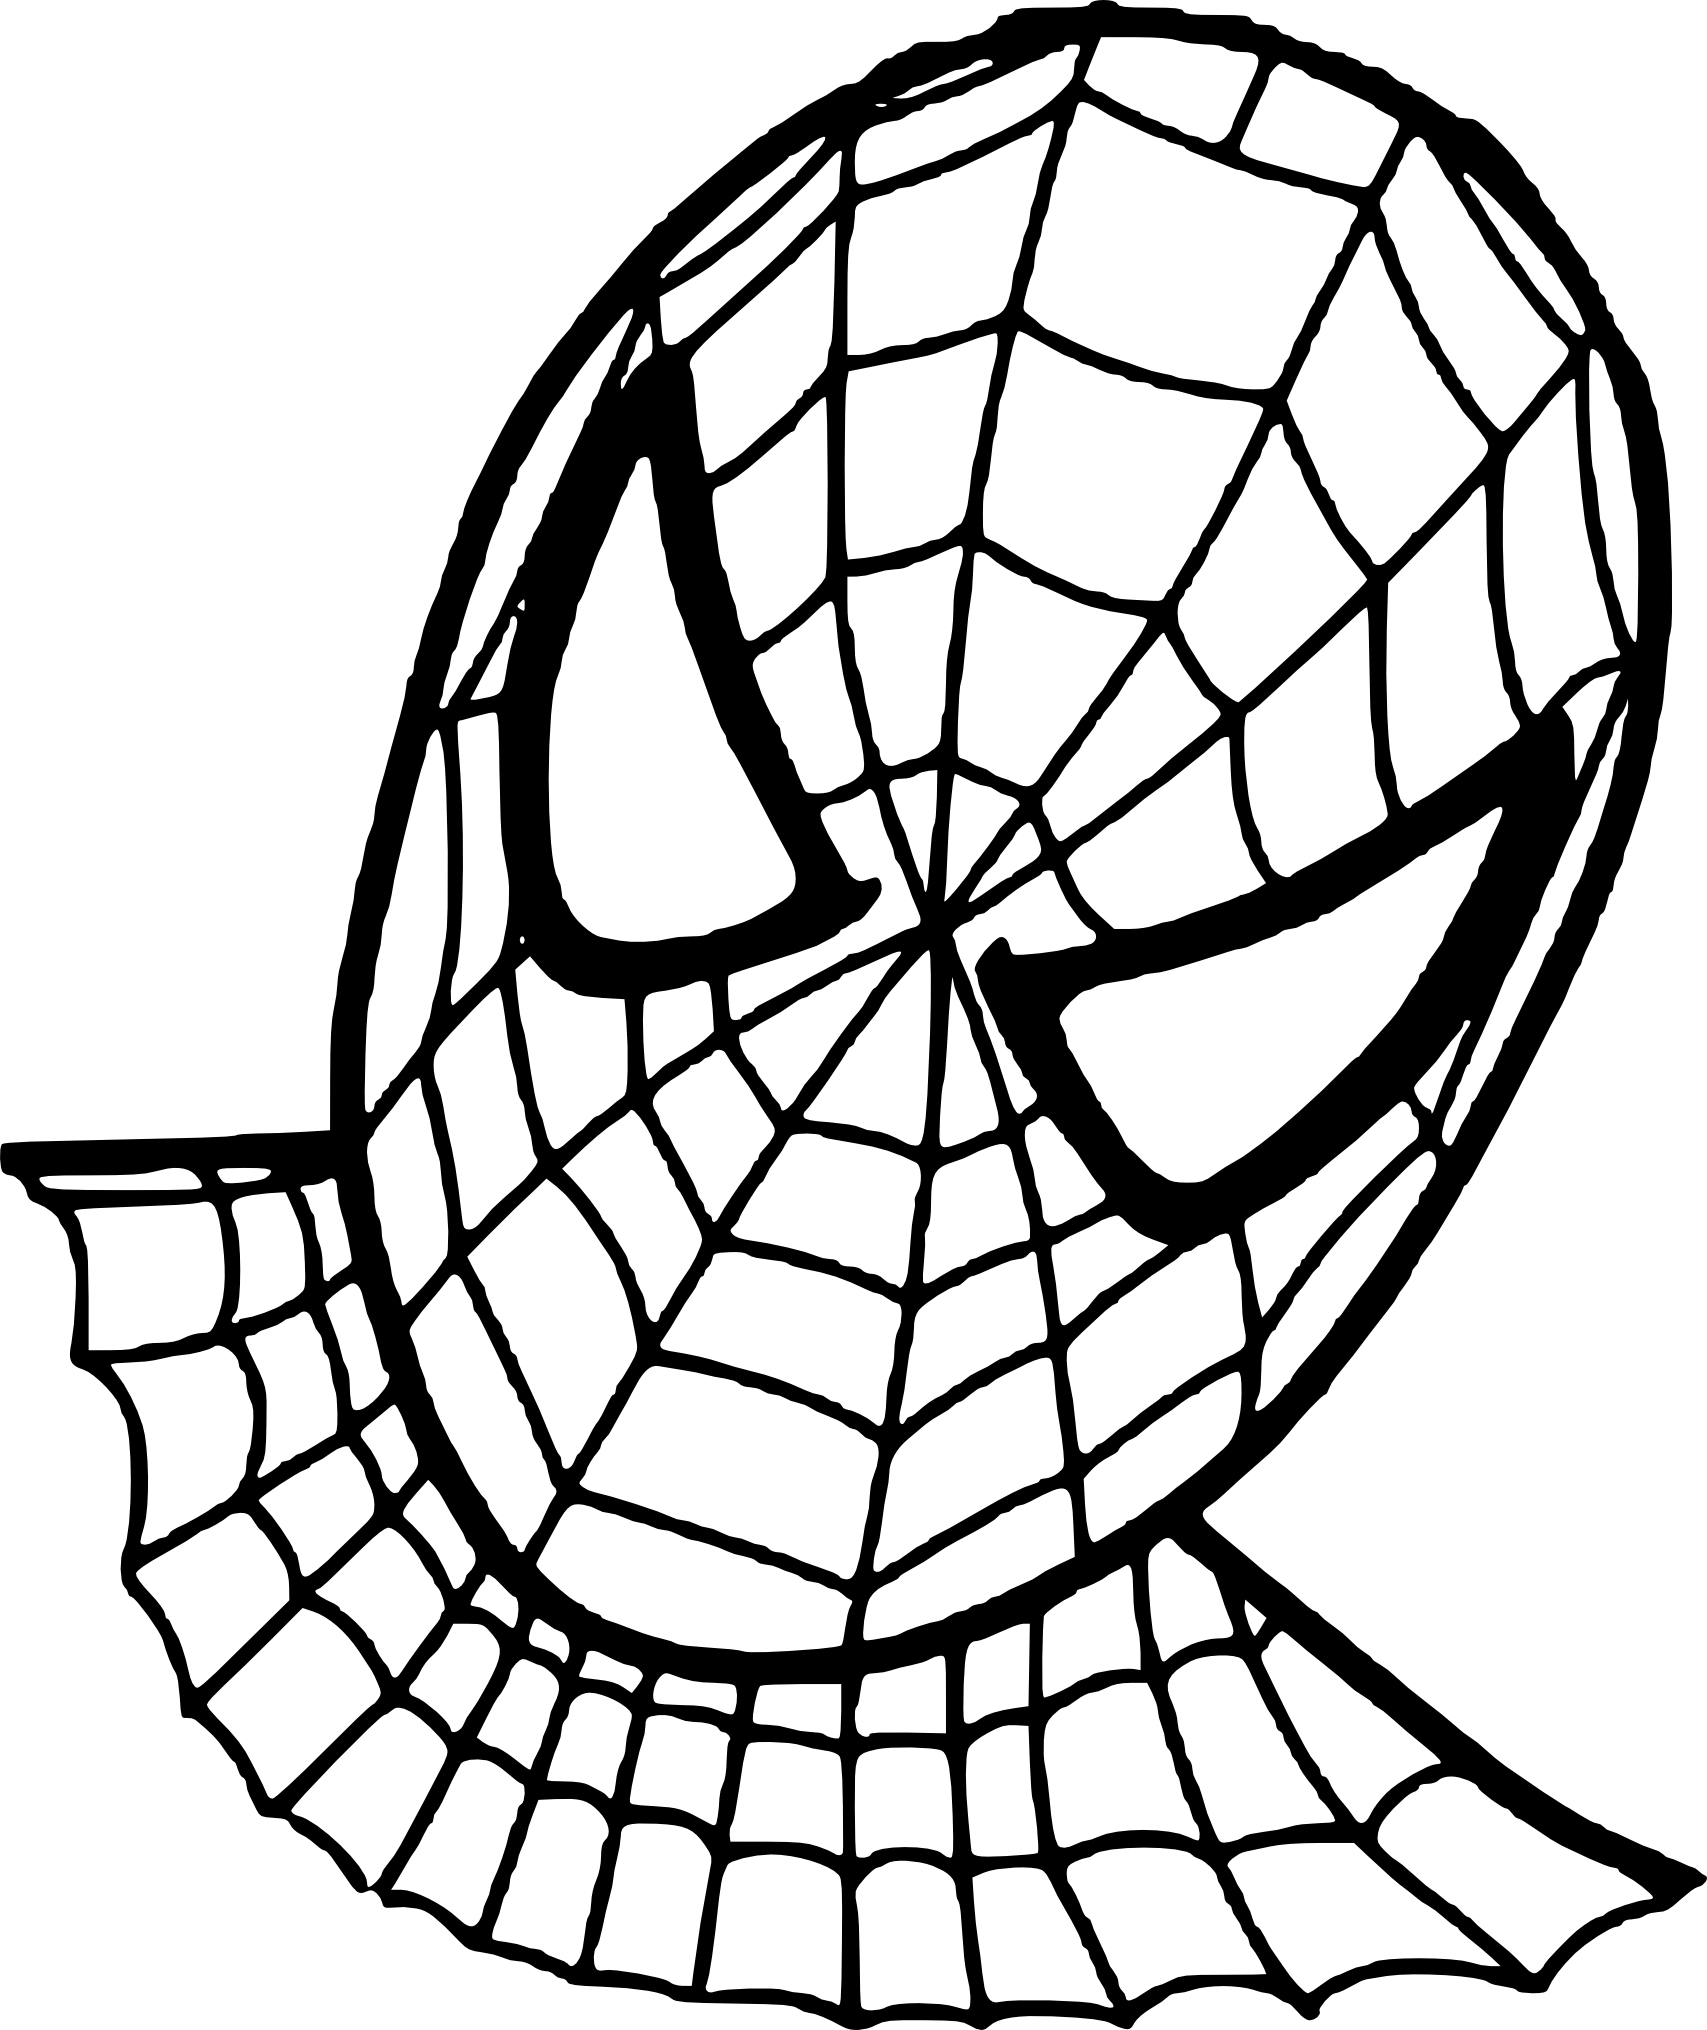 Coloriage visage spiderman imprimer sur coloriages info - Coloriage spiderman imprimer ...